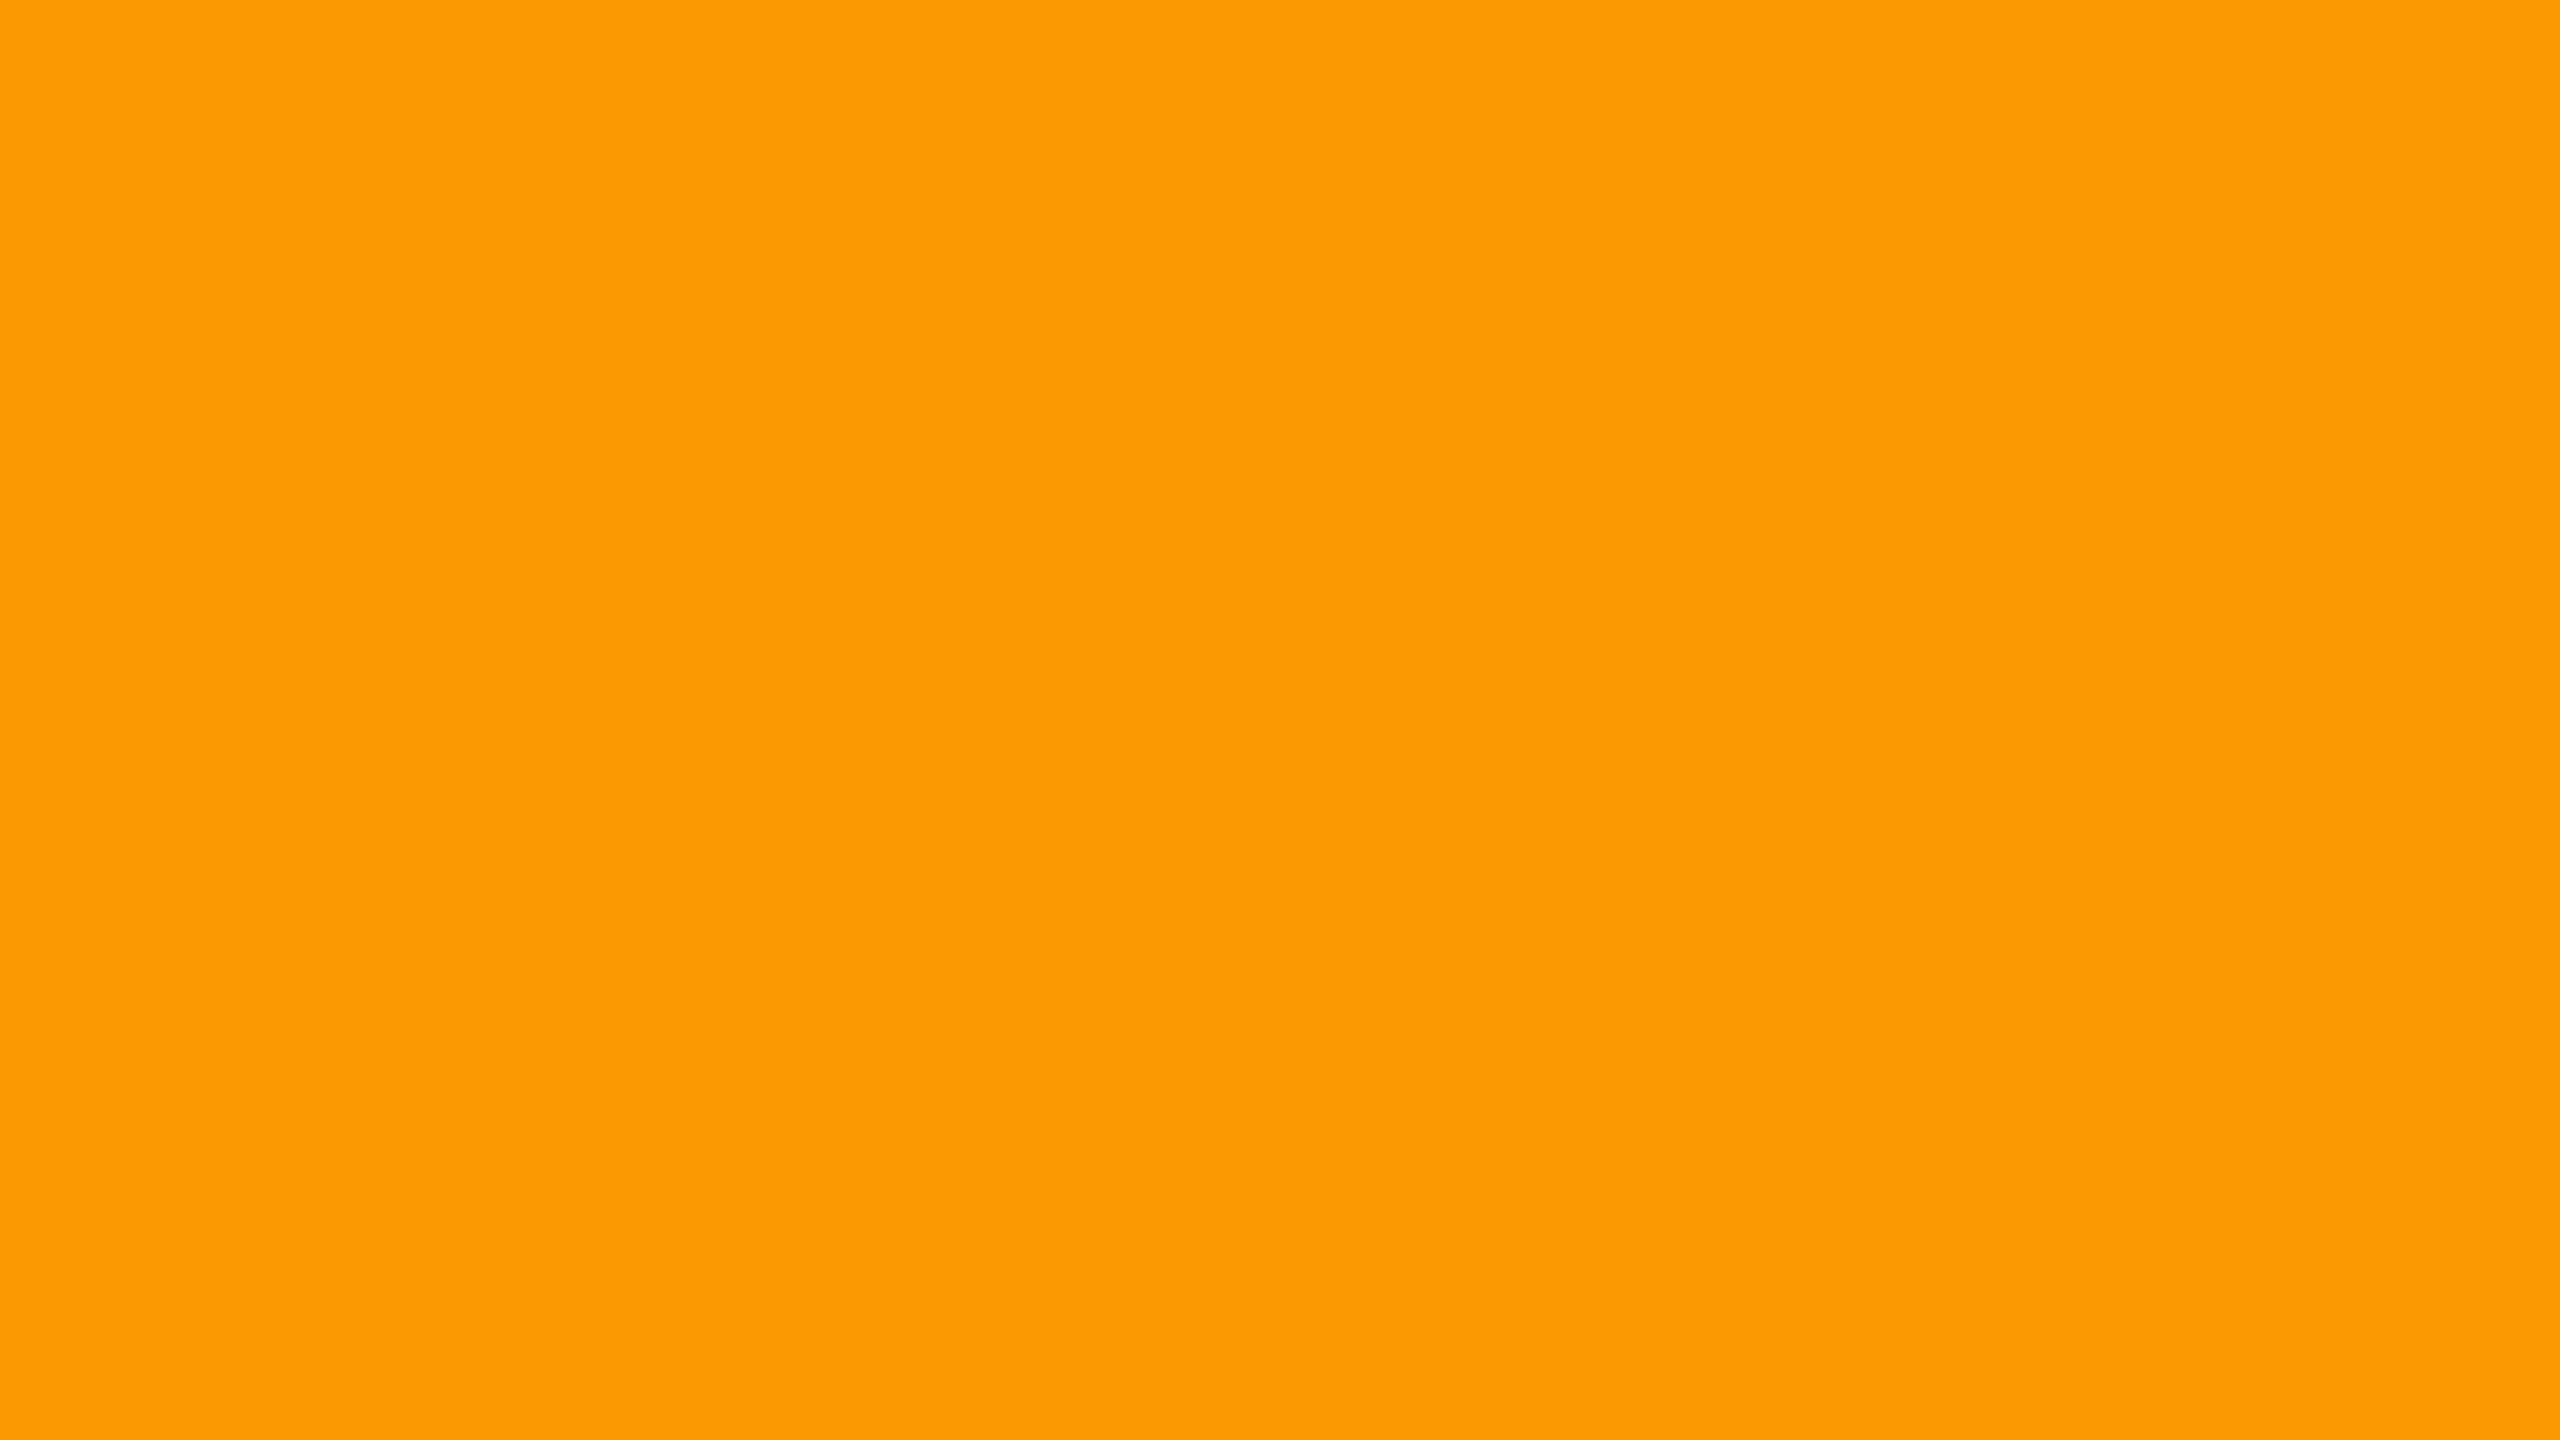 2560x1440 Orange RYB Solid Color Background